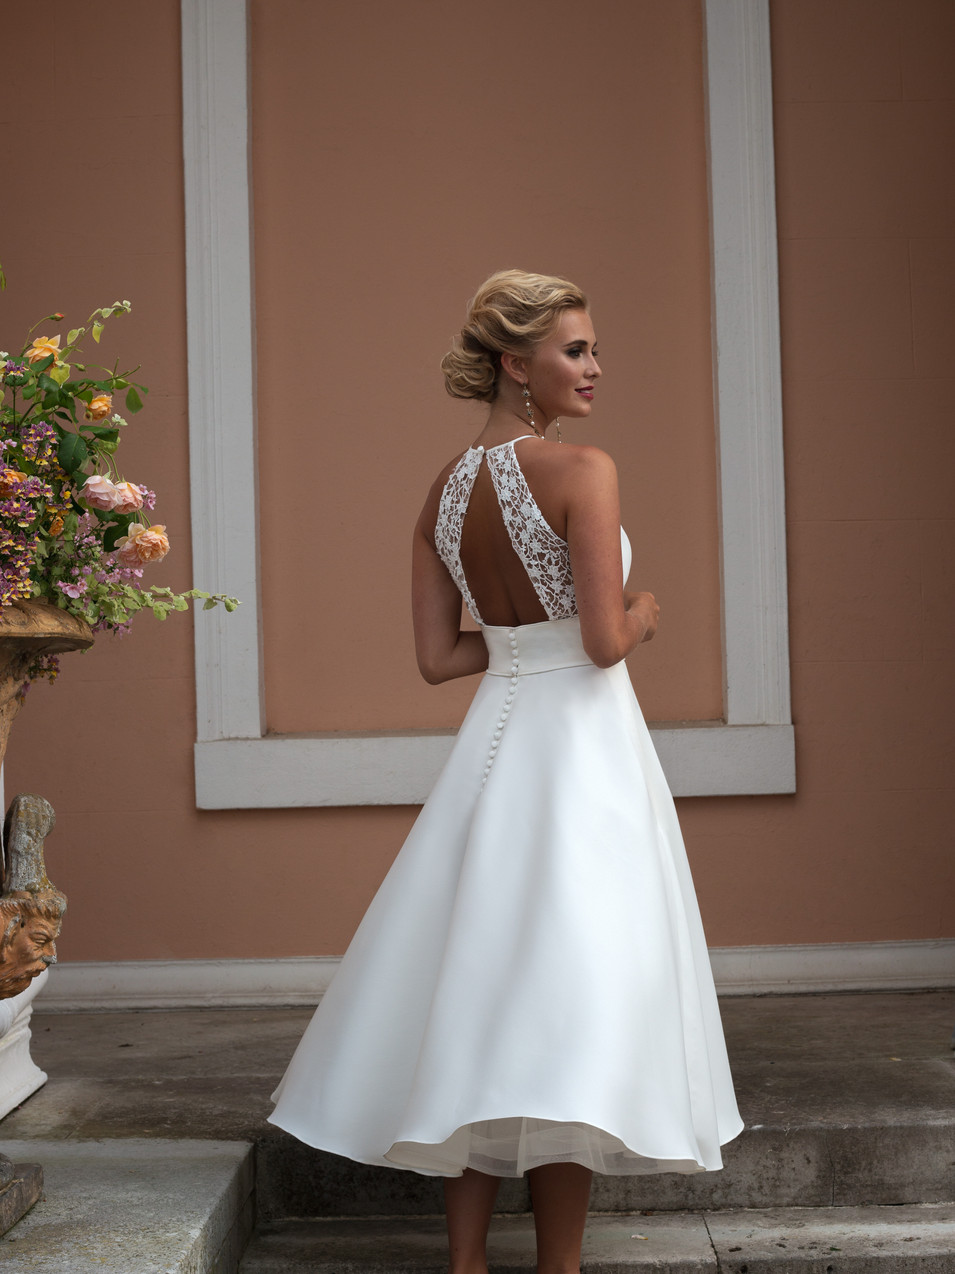 Marie by Brighton Belle - £799